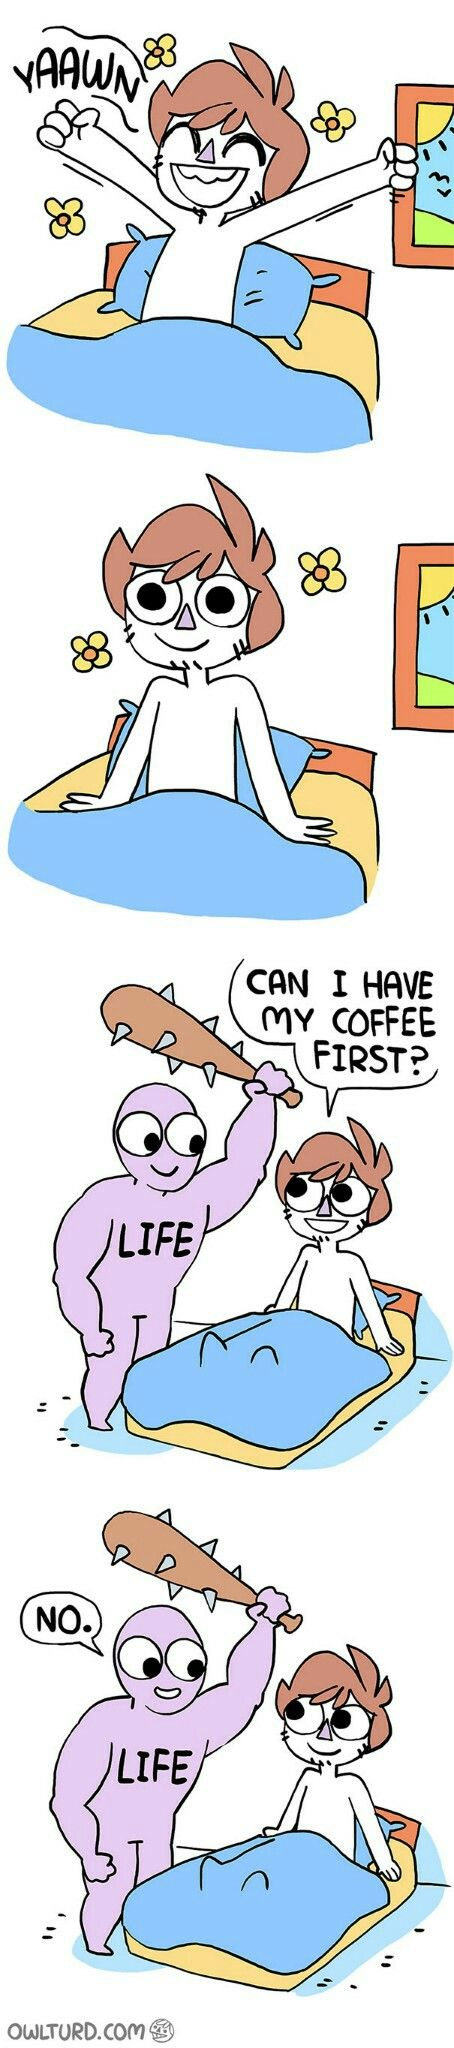 *ignores life and all of life's friends until I drink coffee* *ok… I'm ready now*  *gets hit in face*